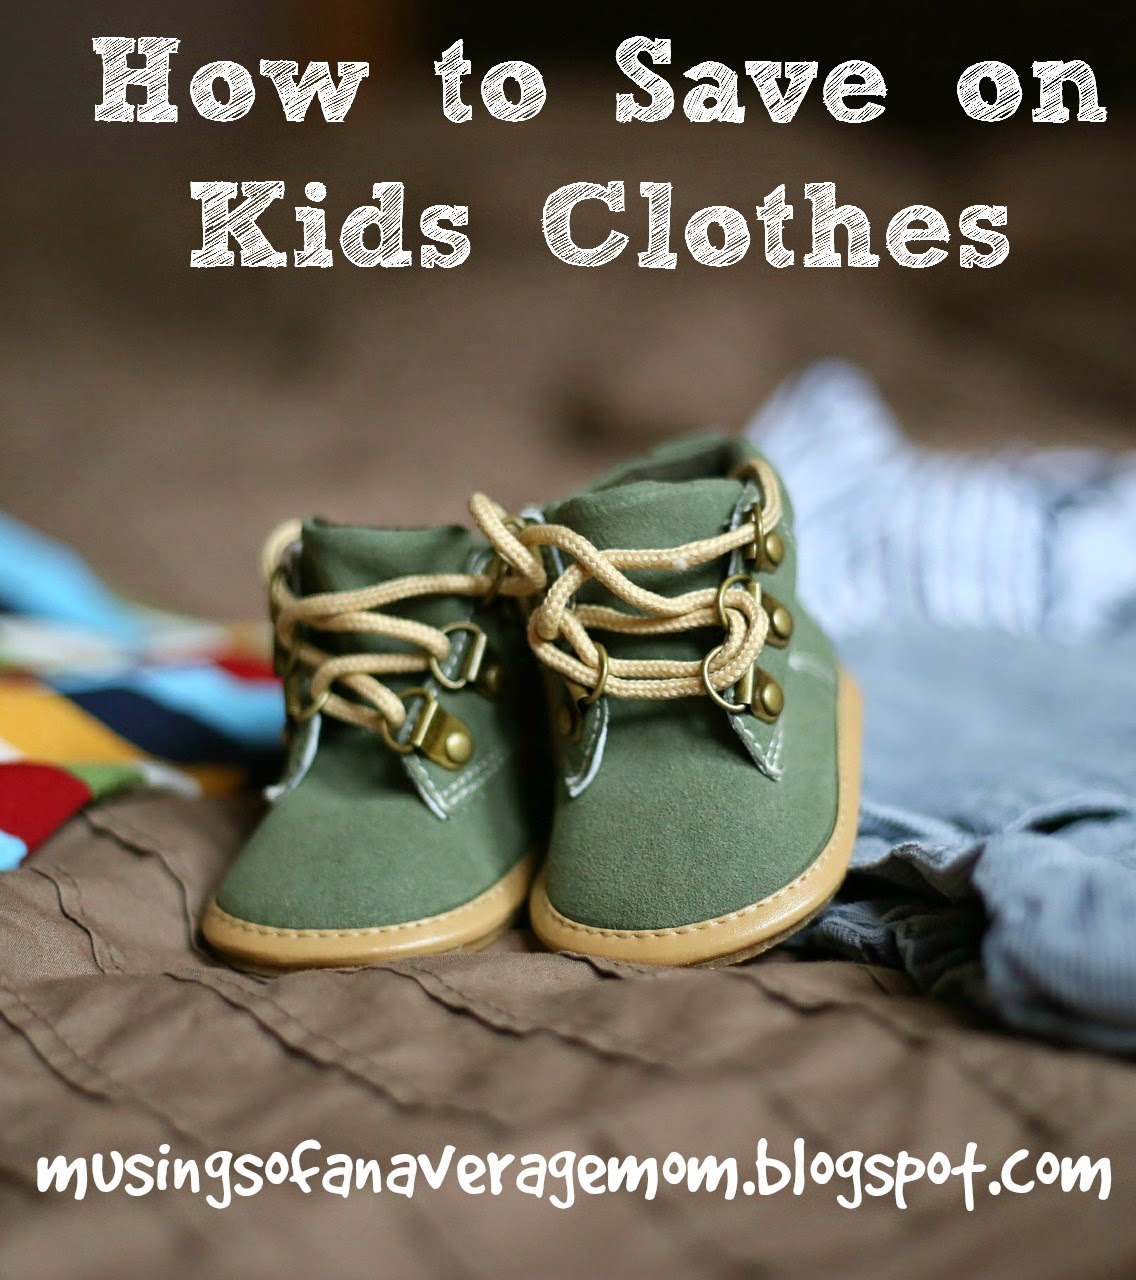 How to Save on Kids Clothes